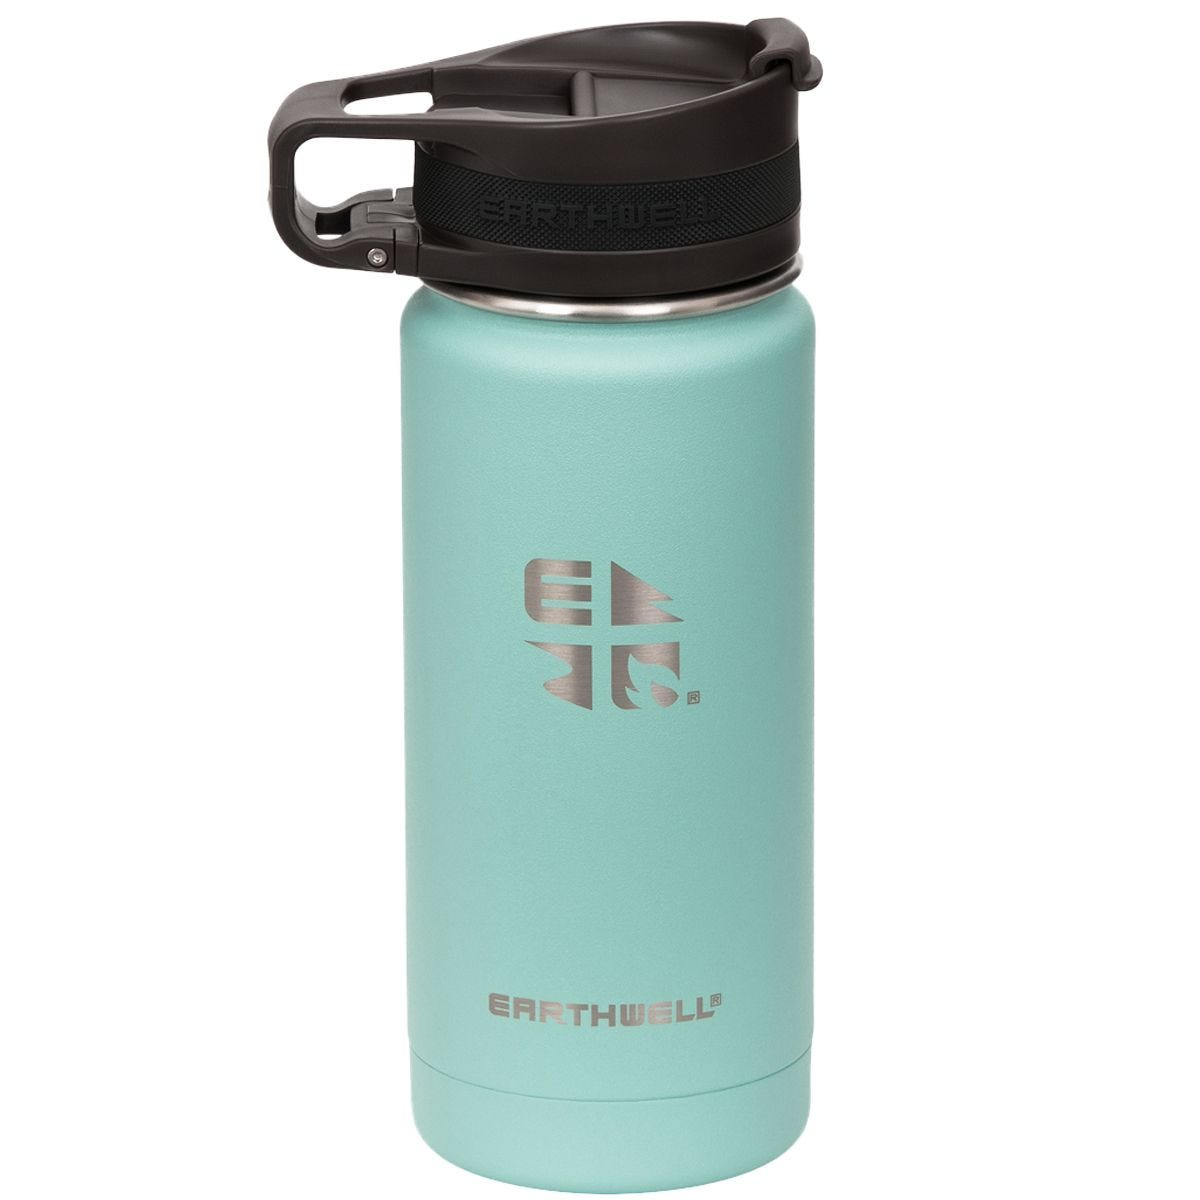 The Earthwell Roaster Loop Vacuum Bottle 473ml travel product recommended by Lukas on Lifney.